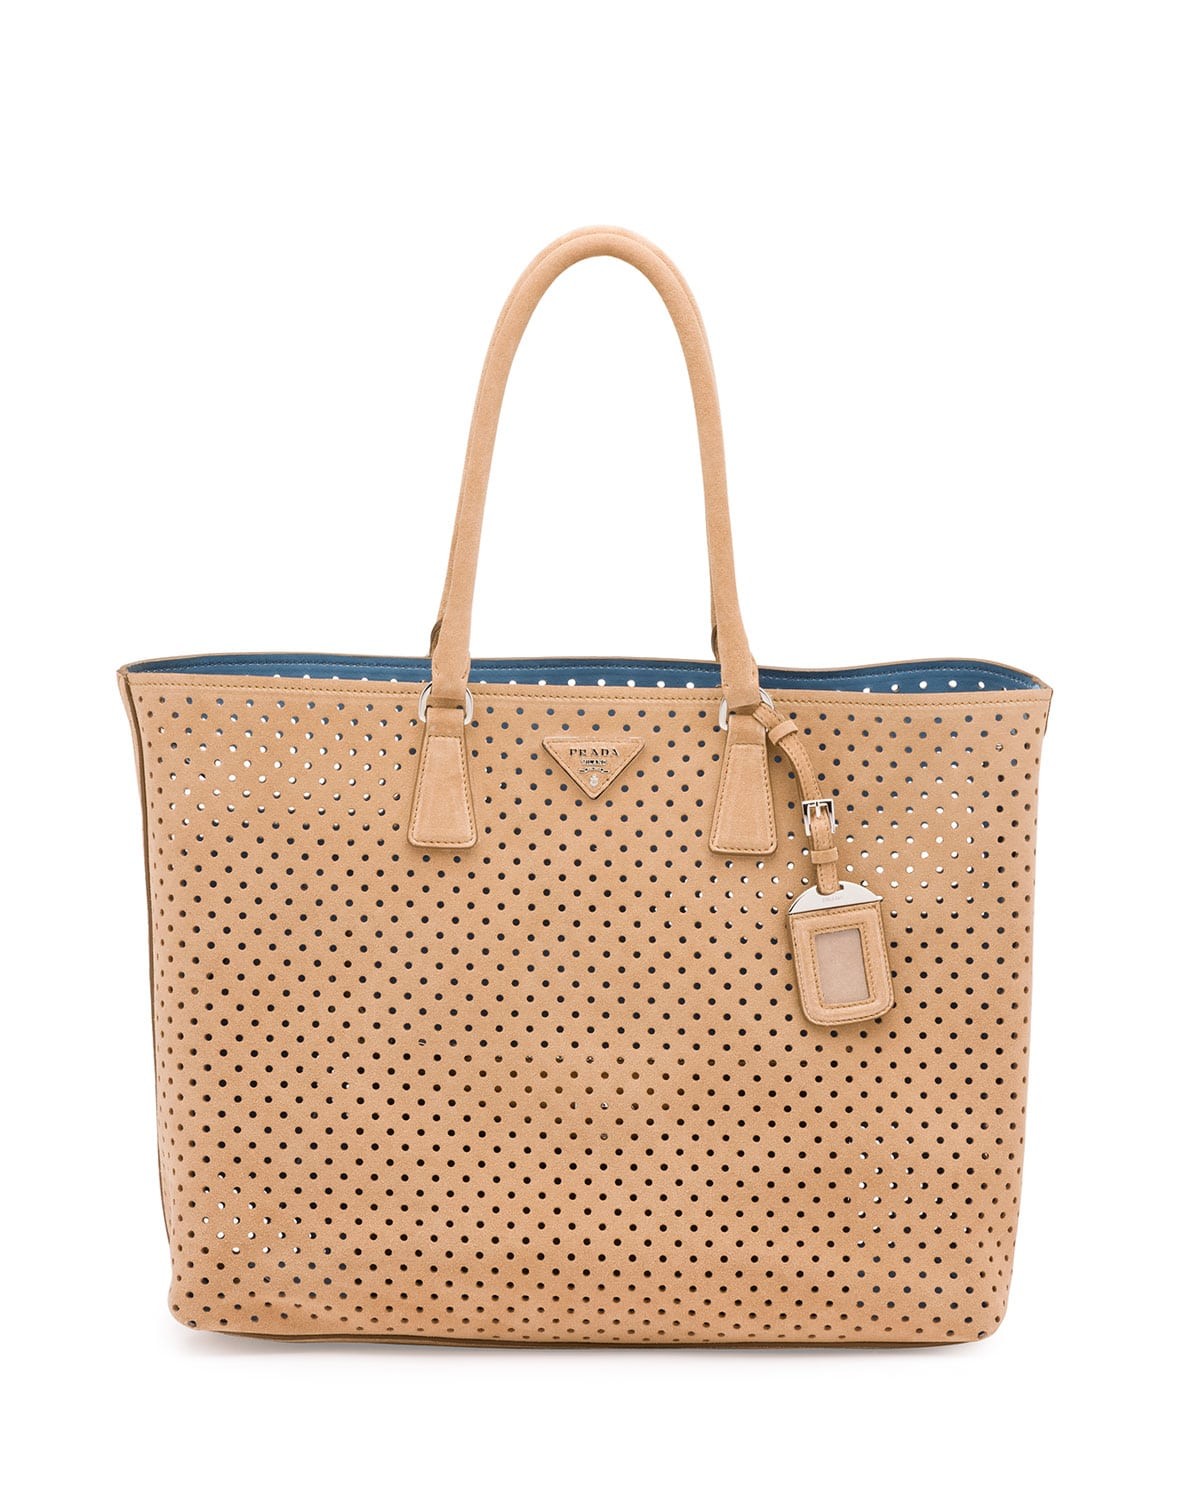 prada resort 2016 bag collection featuring perforated